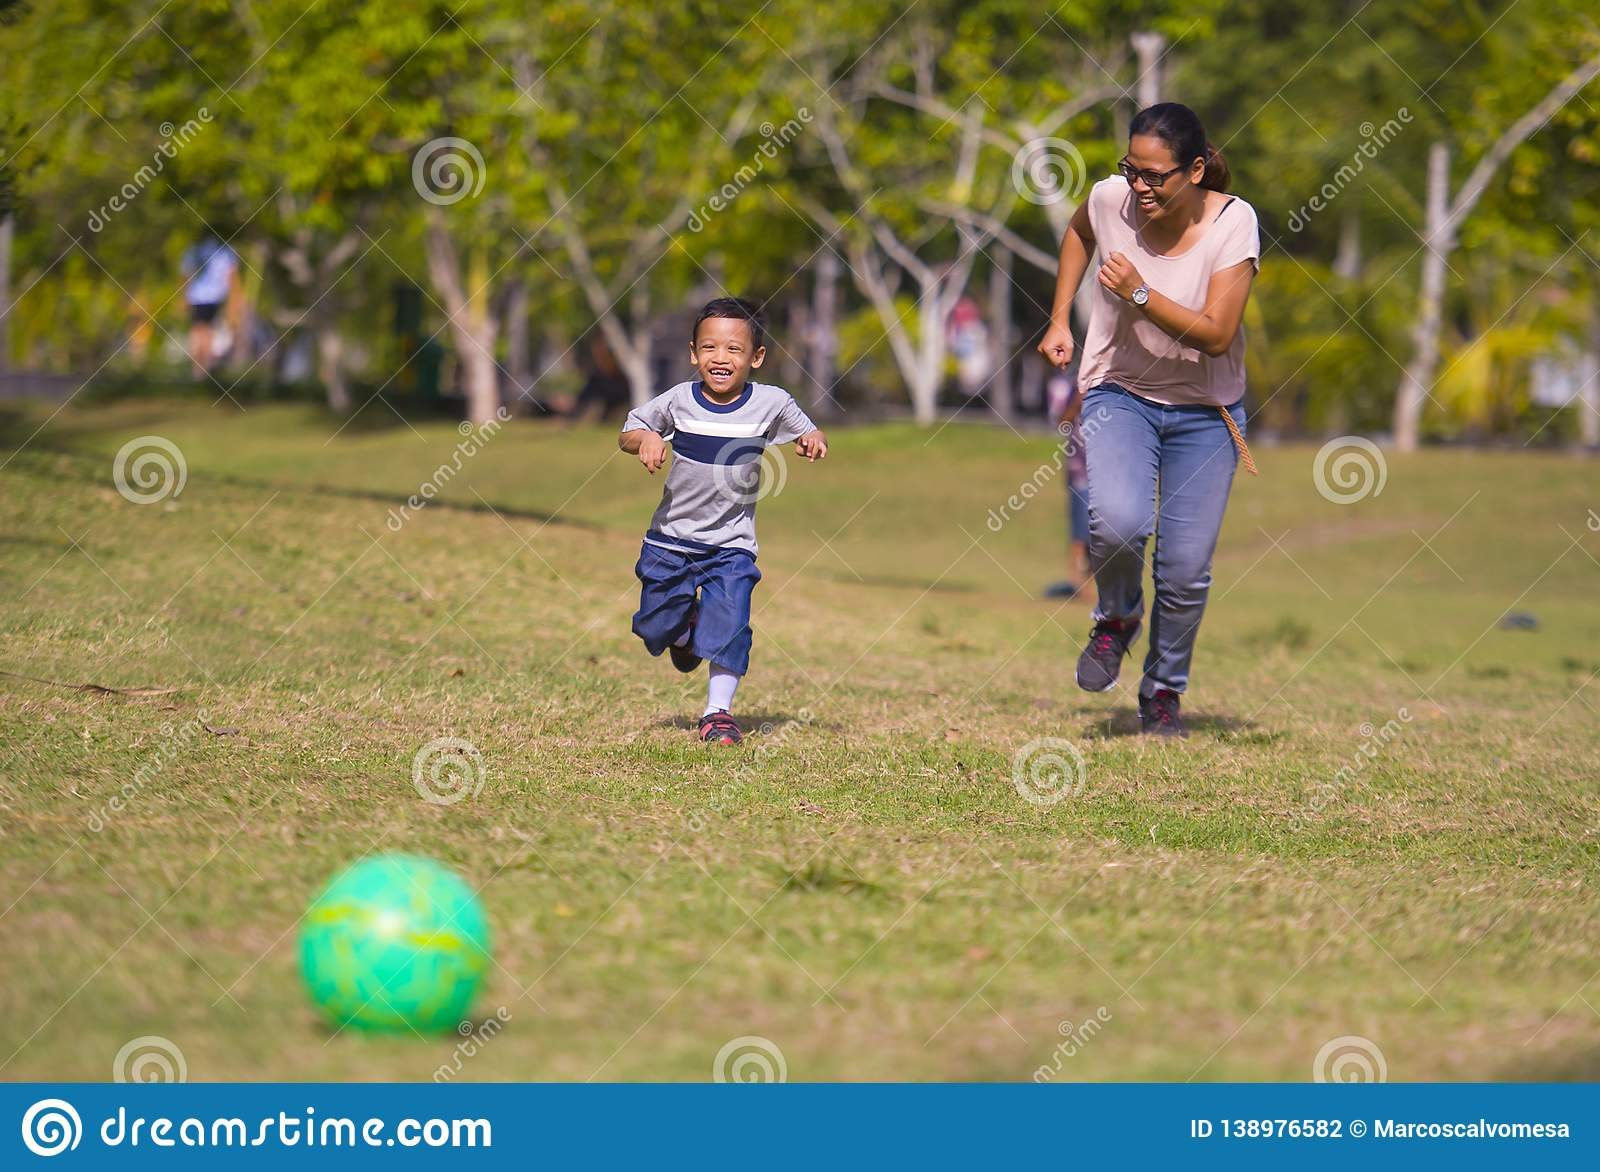 Happy Asian Indonesian mother playing football with little 5 years old son running together excited laughing having fun in soccer. Portrait in city park of happy stock photography